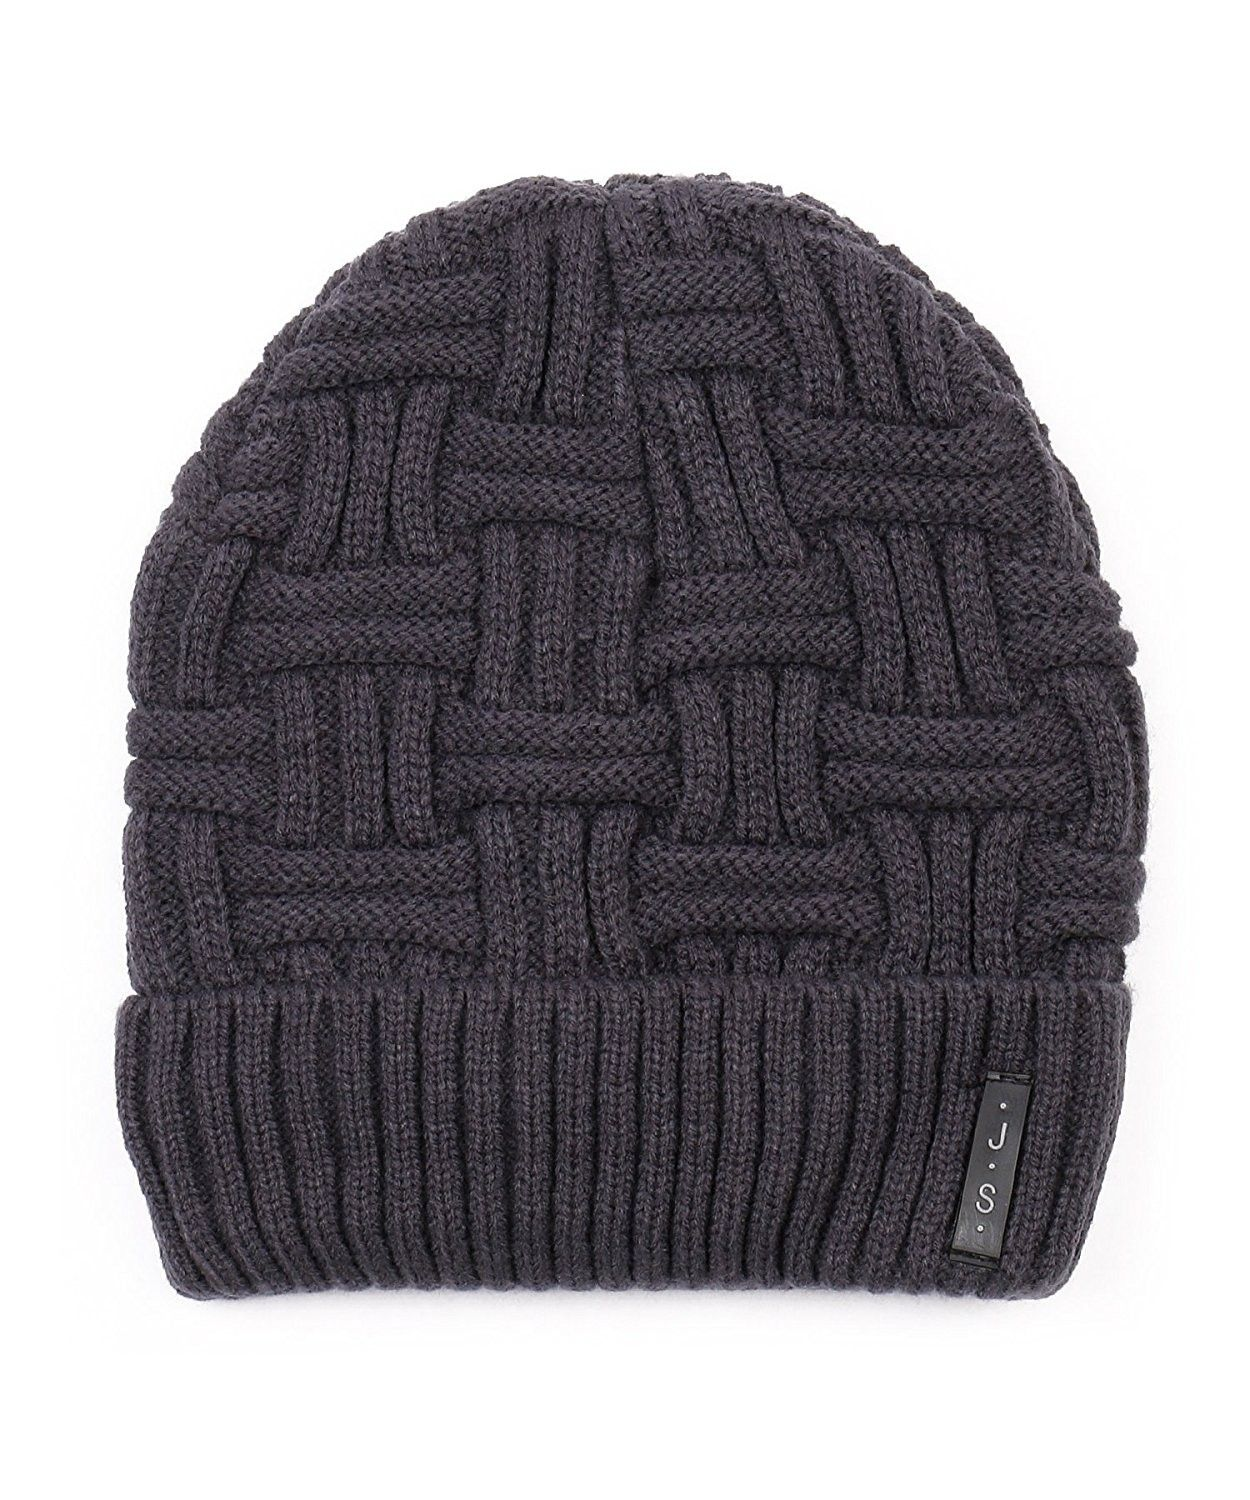 3b0fcfb50 Trendy Warm Ribbed Beanie Thick Slouchy Stretch Cable Knit Hat Soft ...